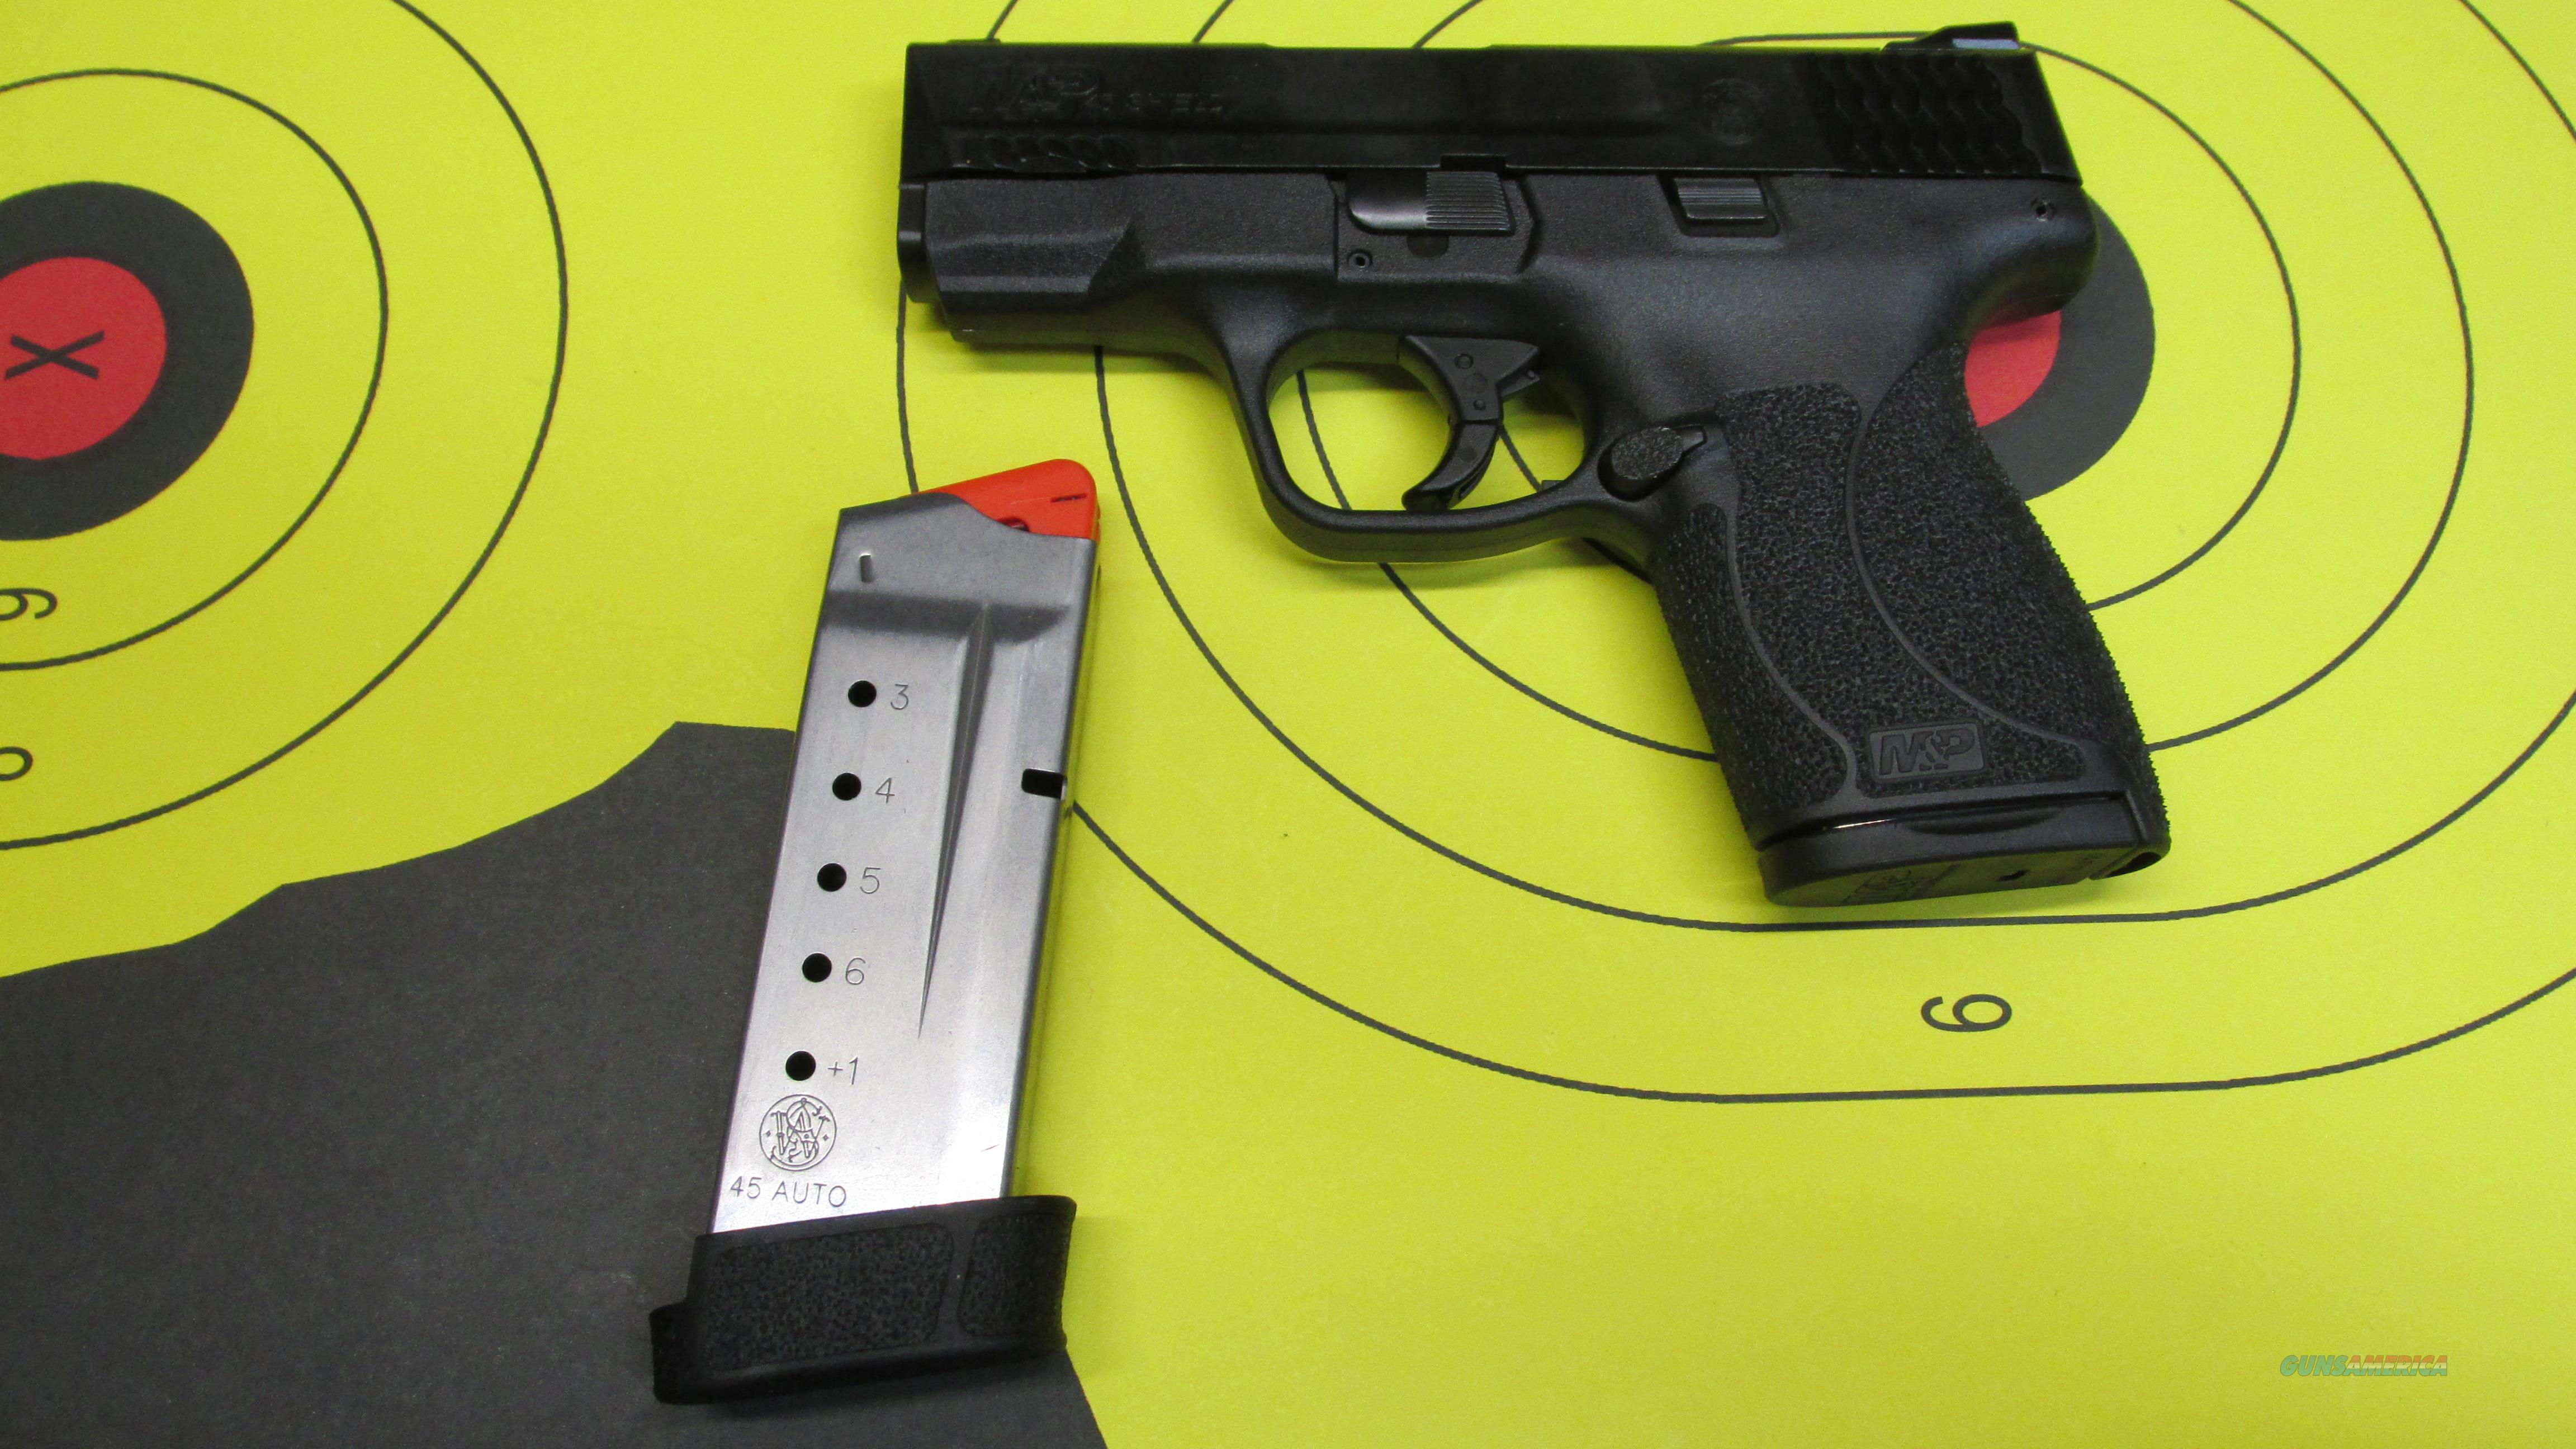 "SMITH &WESSON M&P45 SHIELD NMS .45ACP PISTOL, 6RD MAGAZINE, 7 RD MAGAZINE, 3.4"" BARREL  Guns > Pistols > Smith & Wesson Pistols - Autos > Shield"